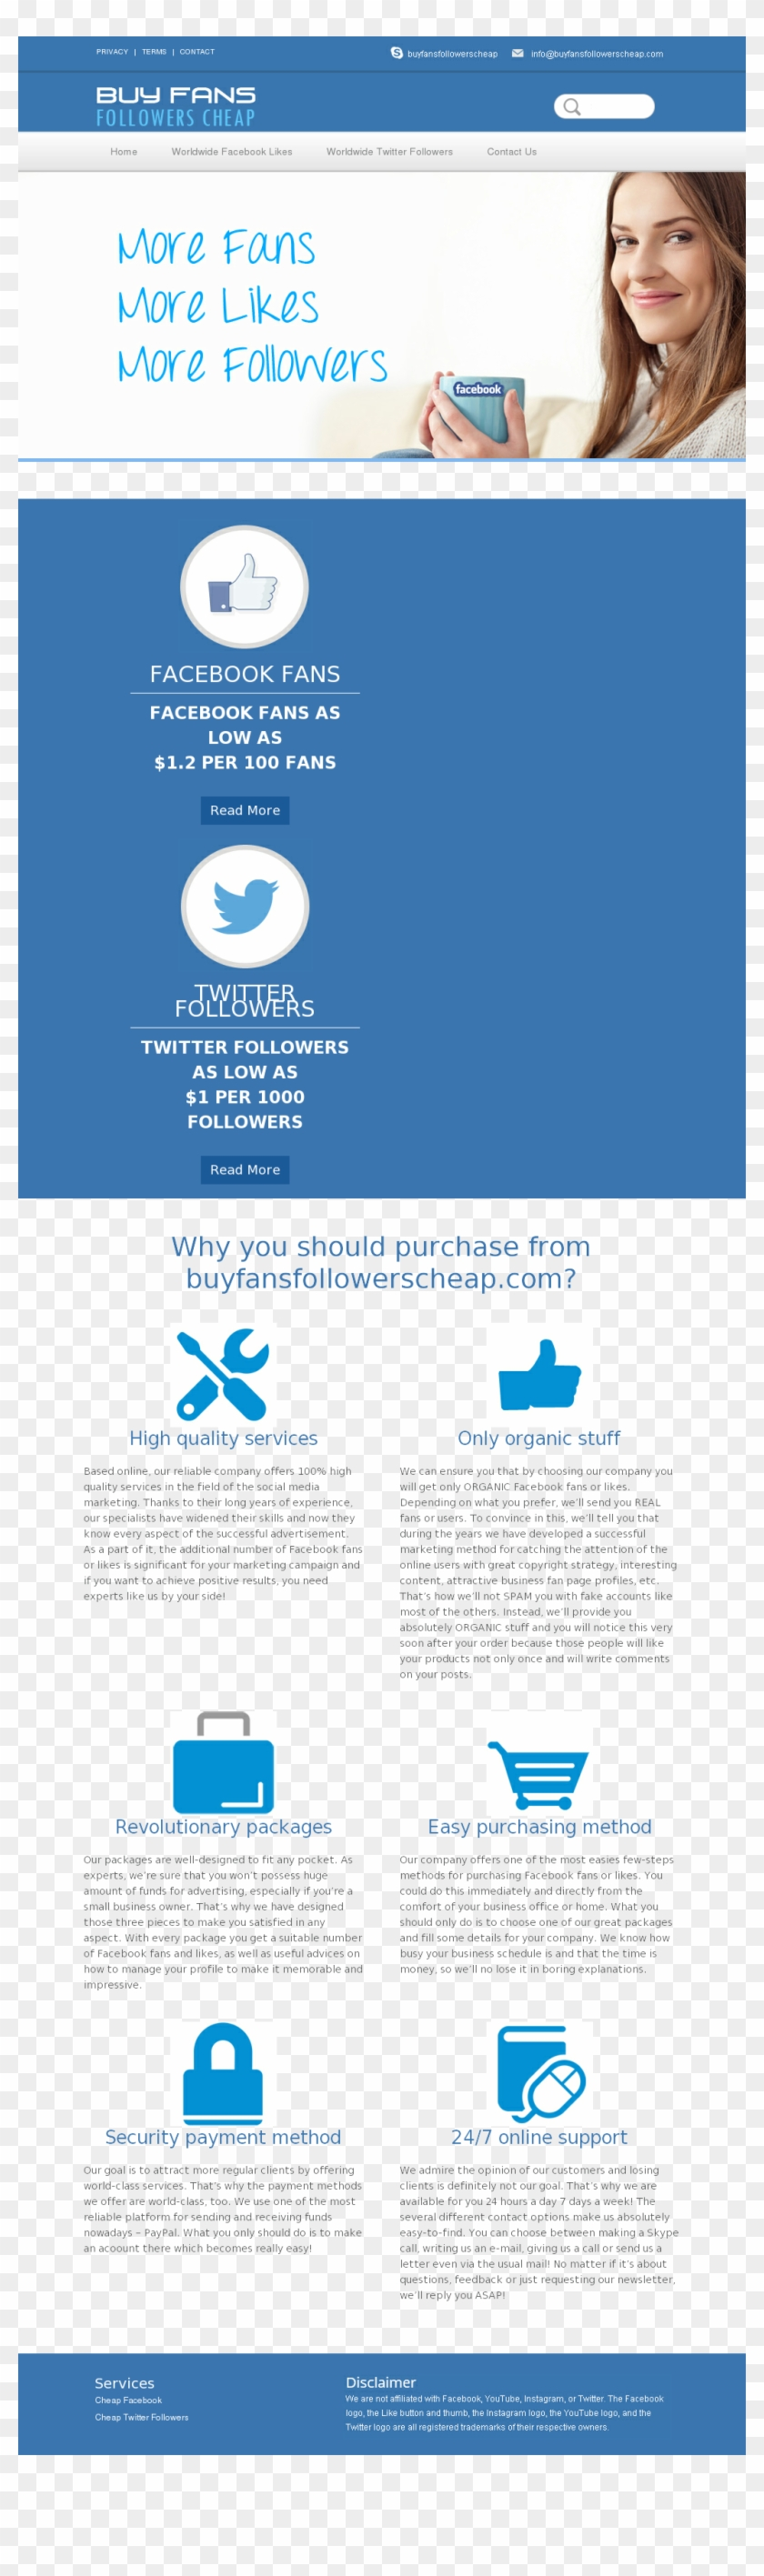 Buy Fans Followers Cheap Competitors, Revenue And Employees - Online Advertising Clipart #3238498